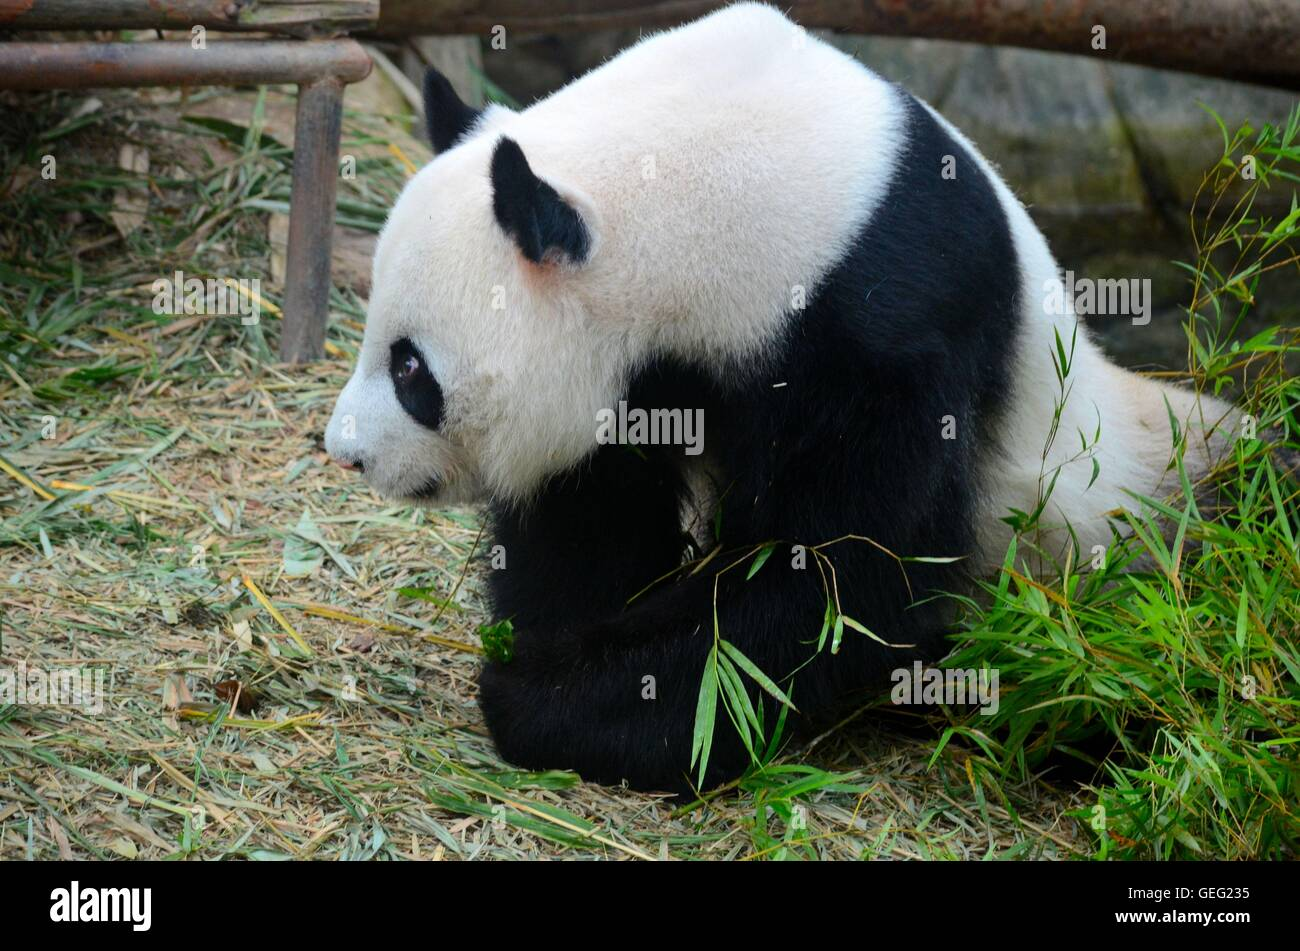 Black and white Panda bear looks into distance with lowered head - Stock Image